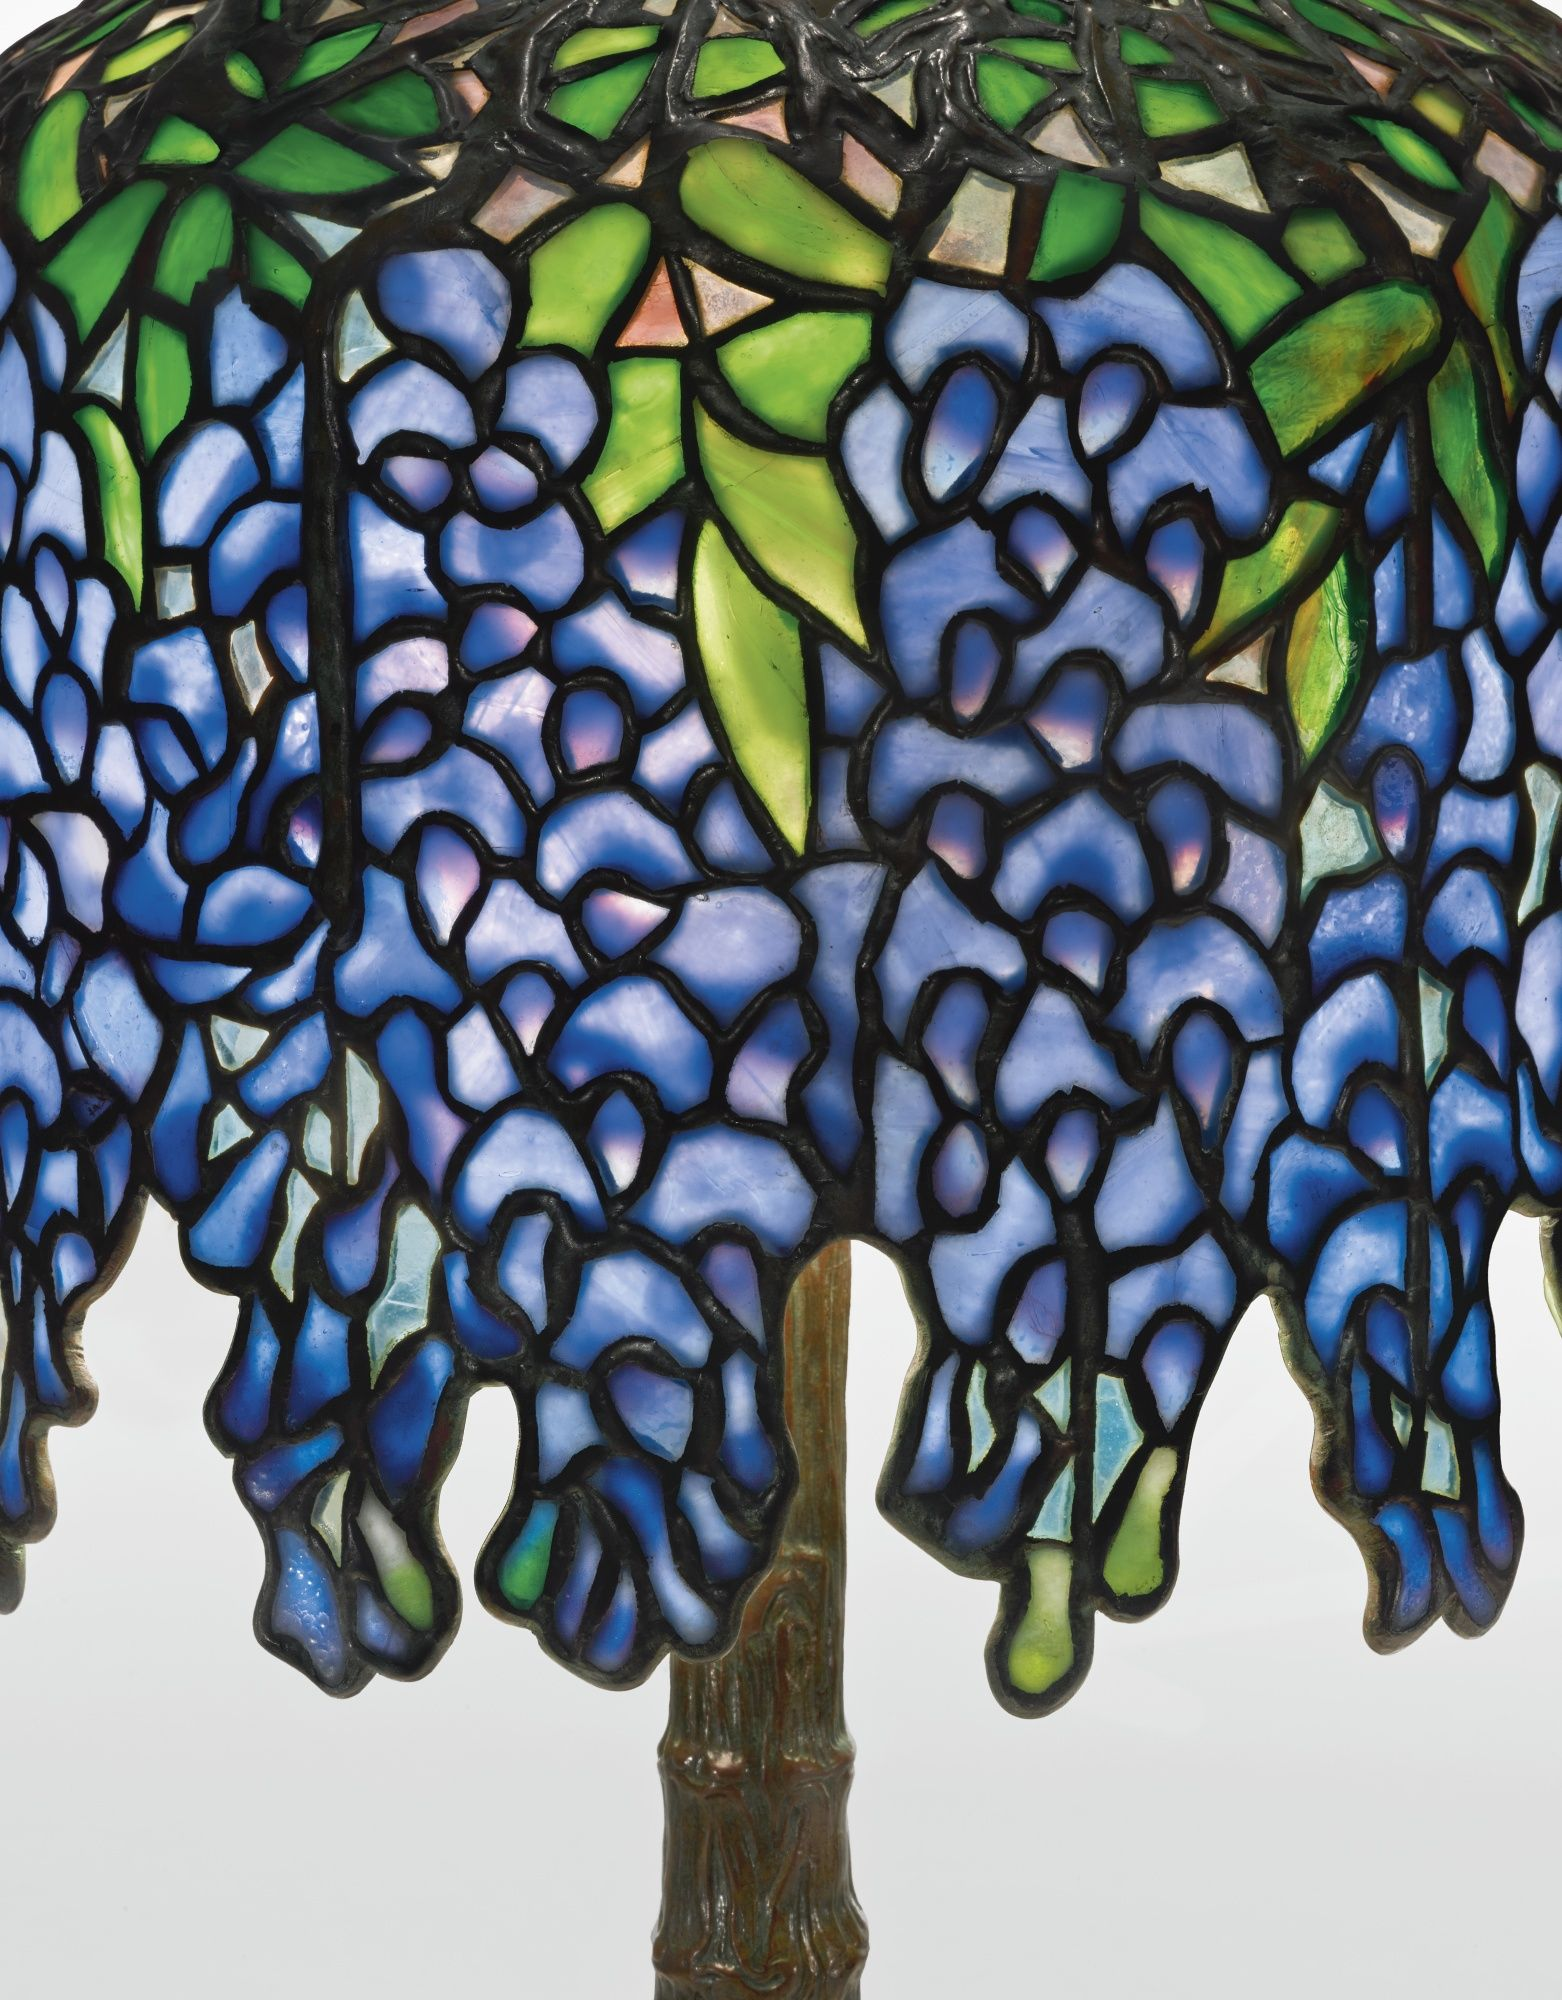 Tiffany studios pony wisteria table lamp shade impressed tiffany tiffany studios pony wisteria table lamp shade impressed tiffany studios new york and 349 mozeypictures Gallery